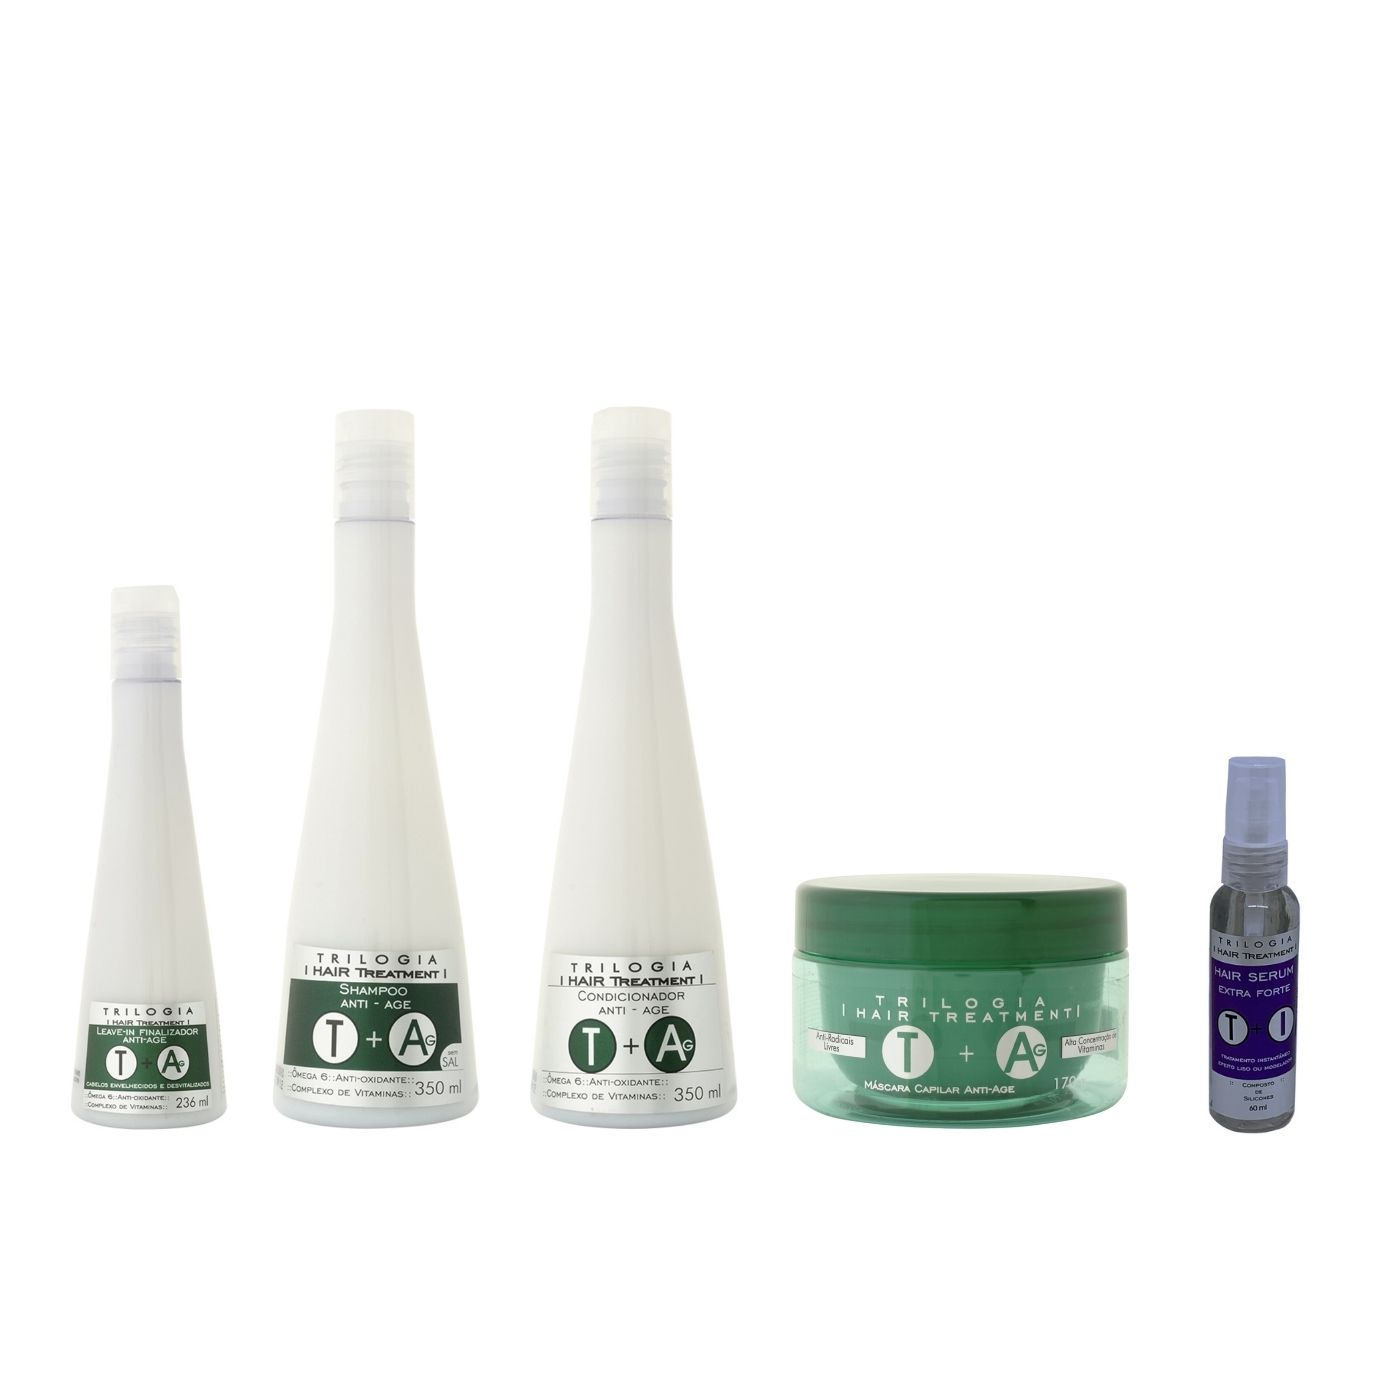 Kit Anti Envelhecimento Trilogia (sh, Cond, Masc, Leave In, Serum)